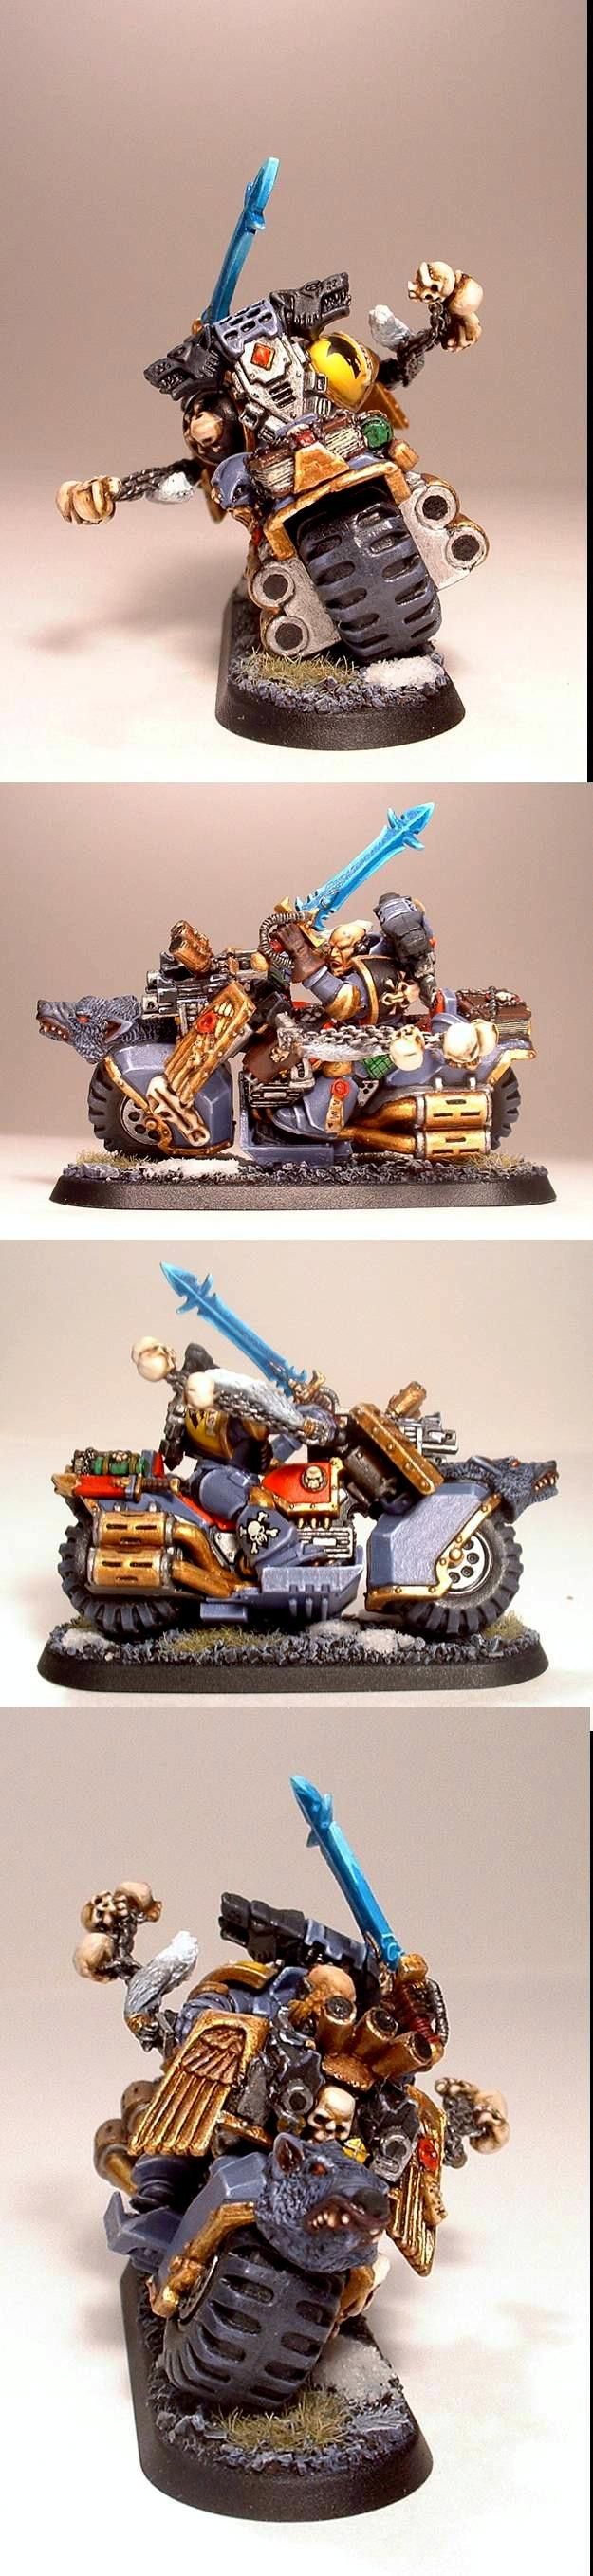 Bike, Conversion, Space Marine Bikes, Space Marines, Space Wolves, Swift Claws, Warhammer 40,000, Wolf Guard Battle Leader